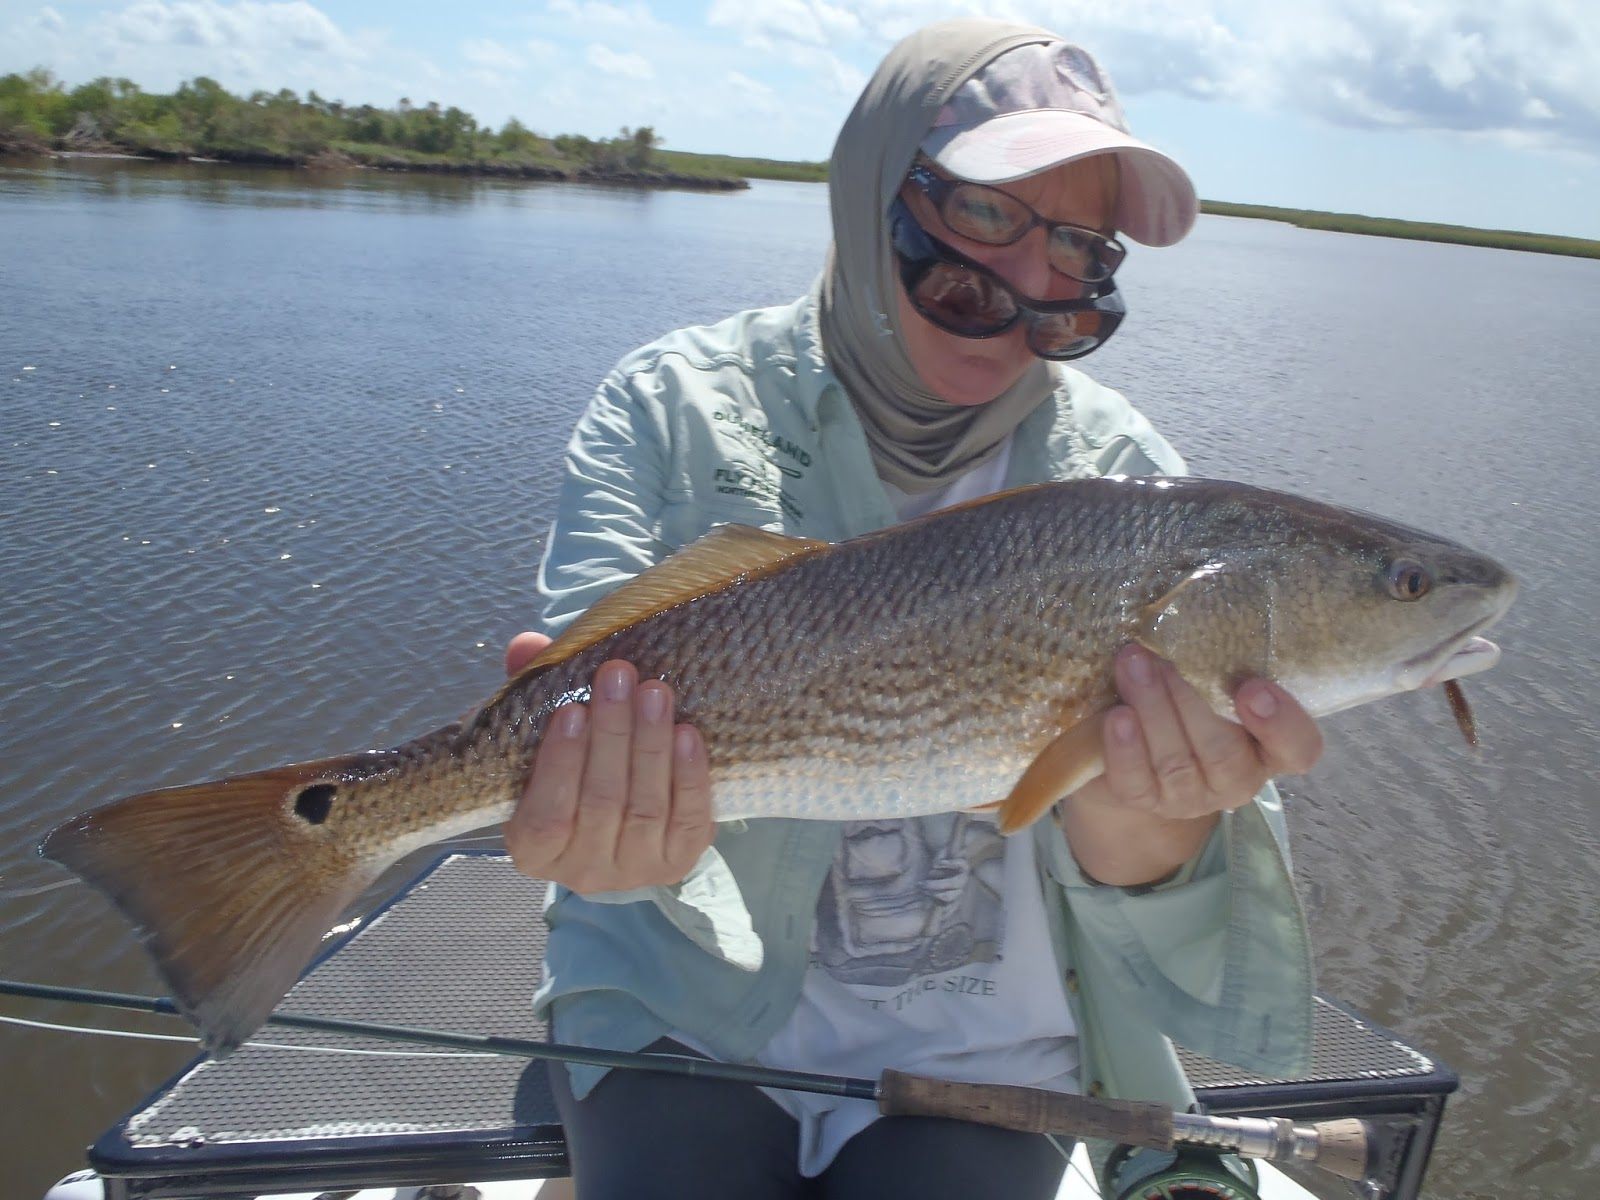 Redfishing louisiana a guides journey september 2015 for Fly fishing redfish